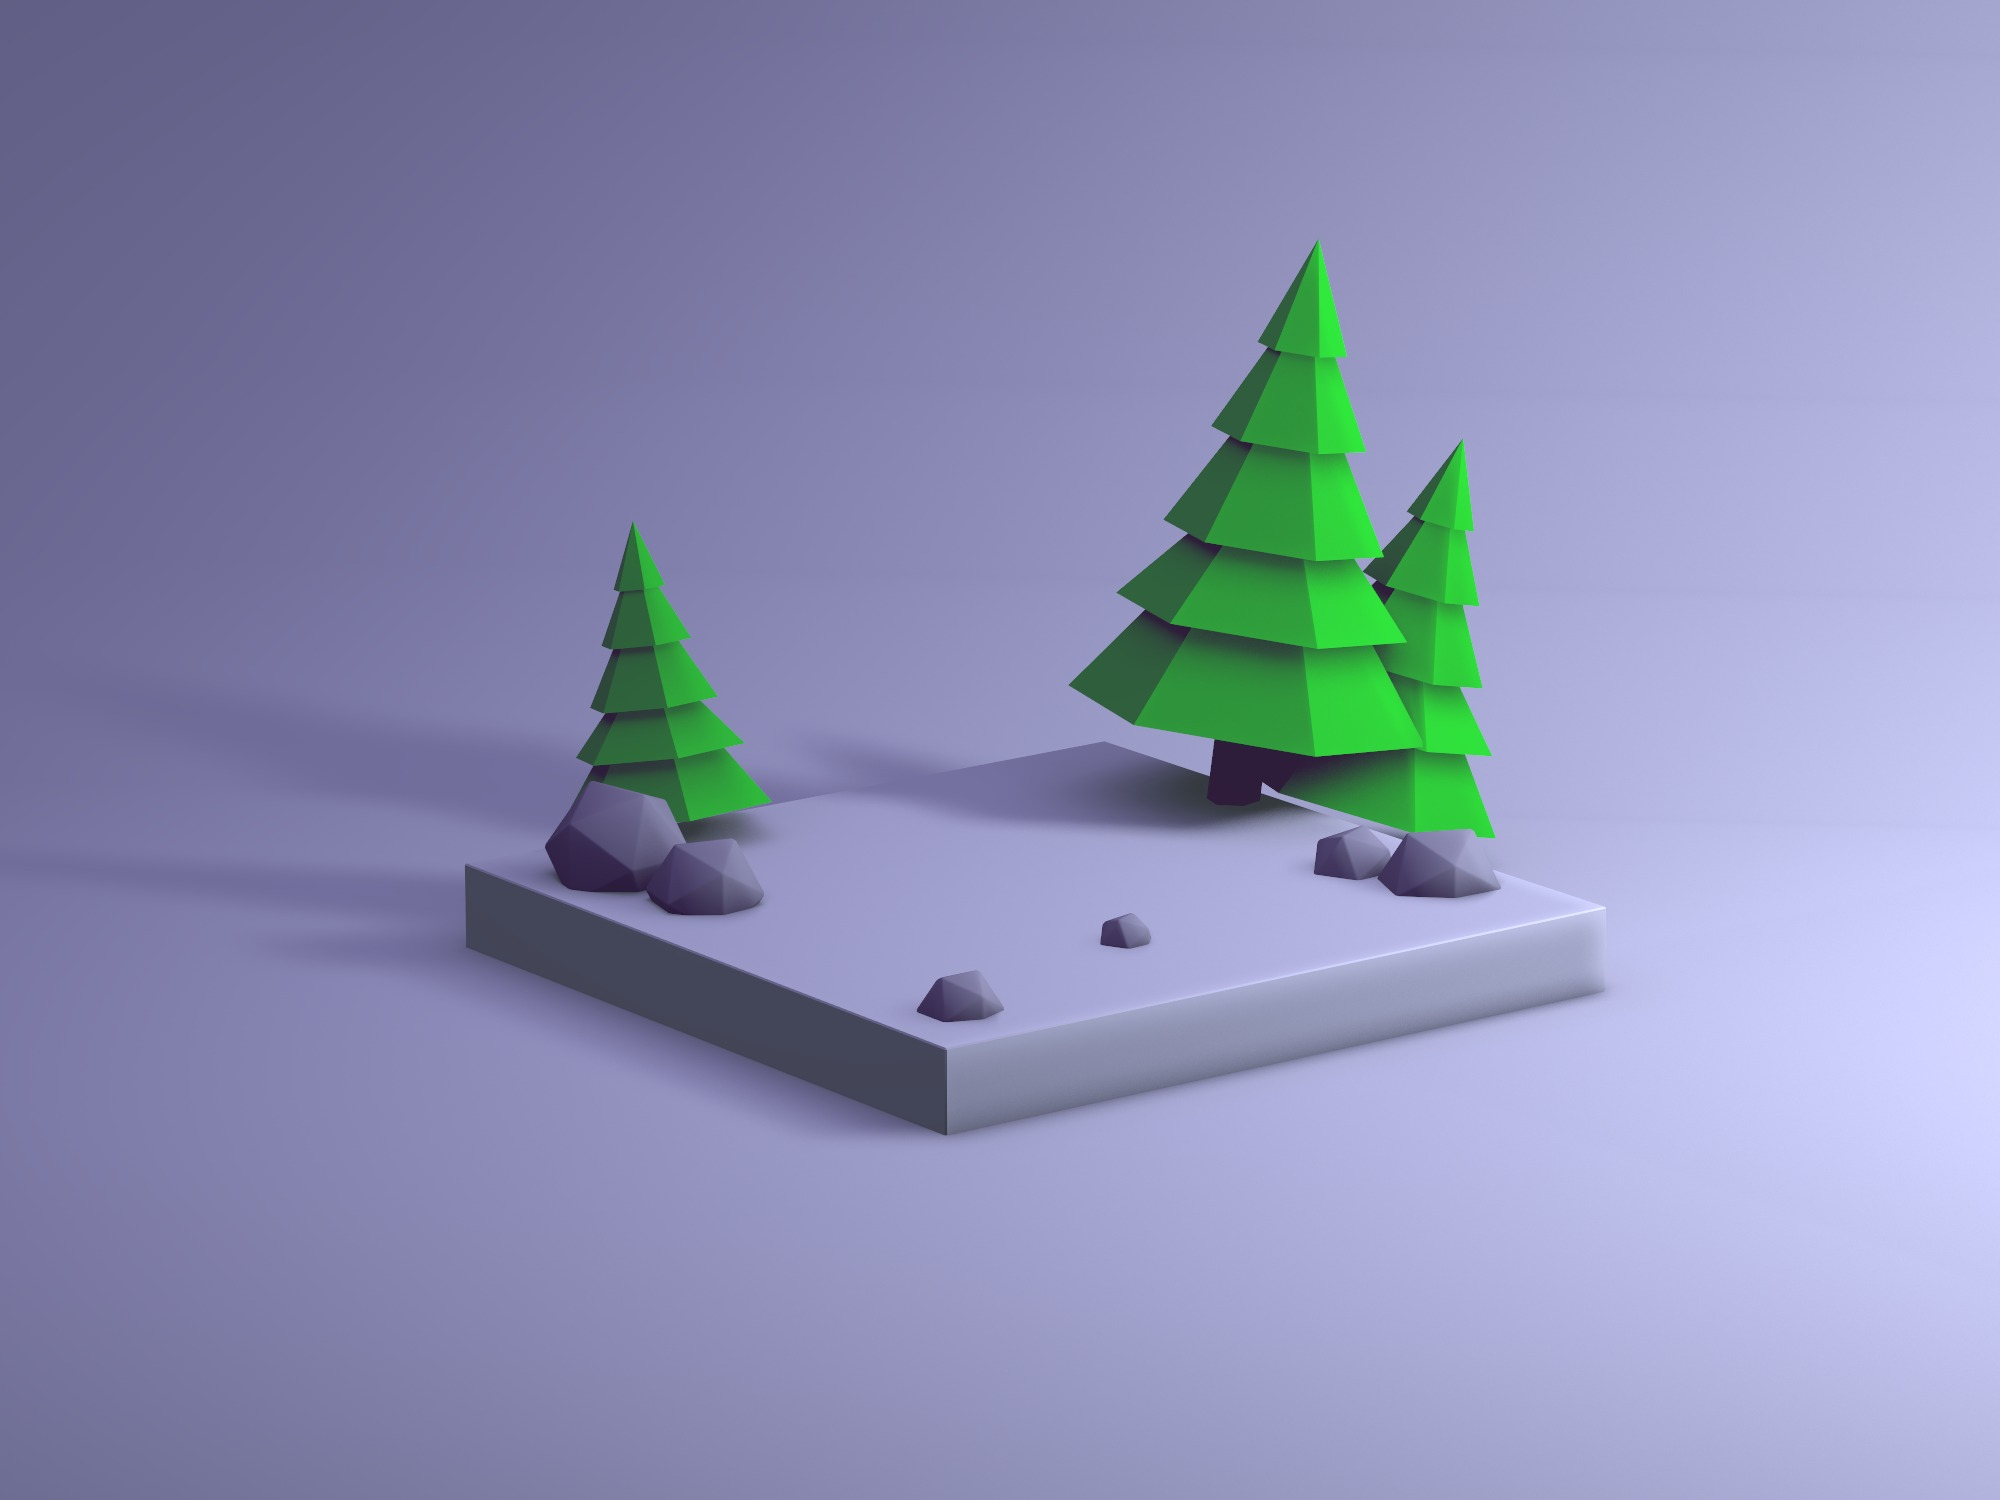 Low poly forest base for your model - 3D design by Vectary templates Jun 2, 2018